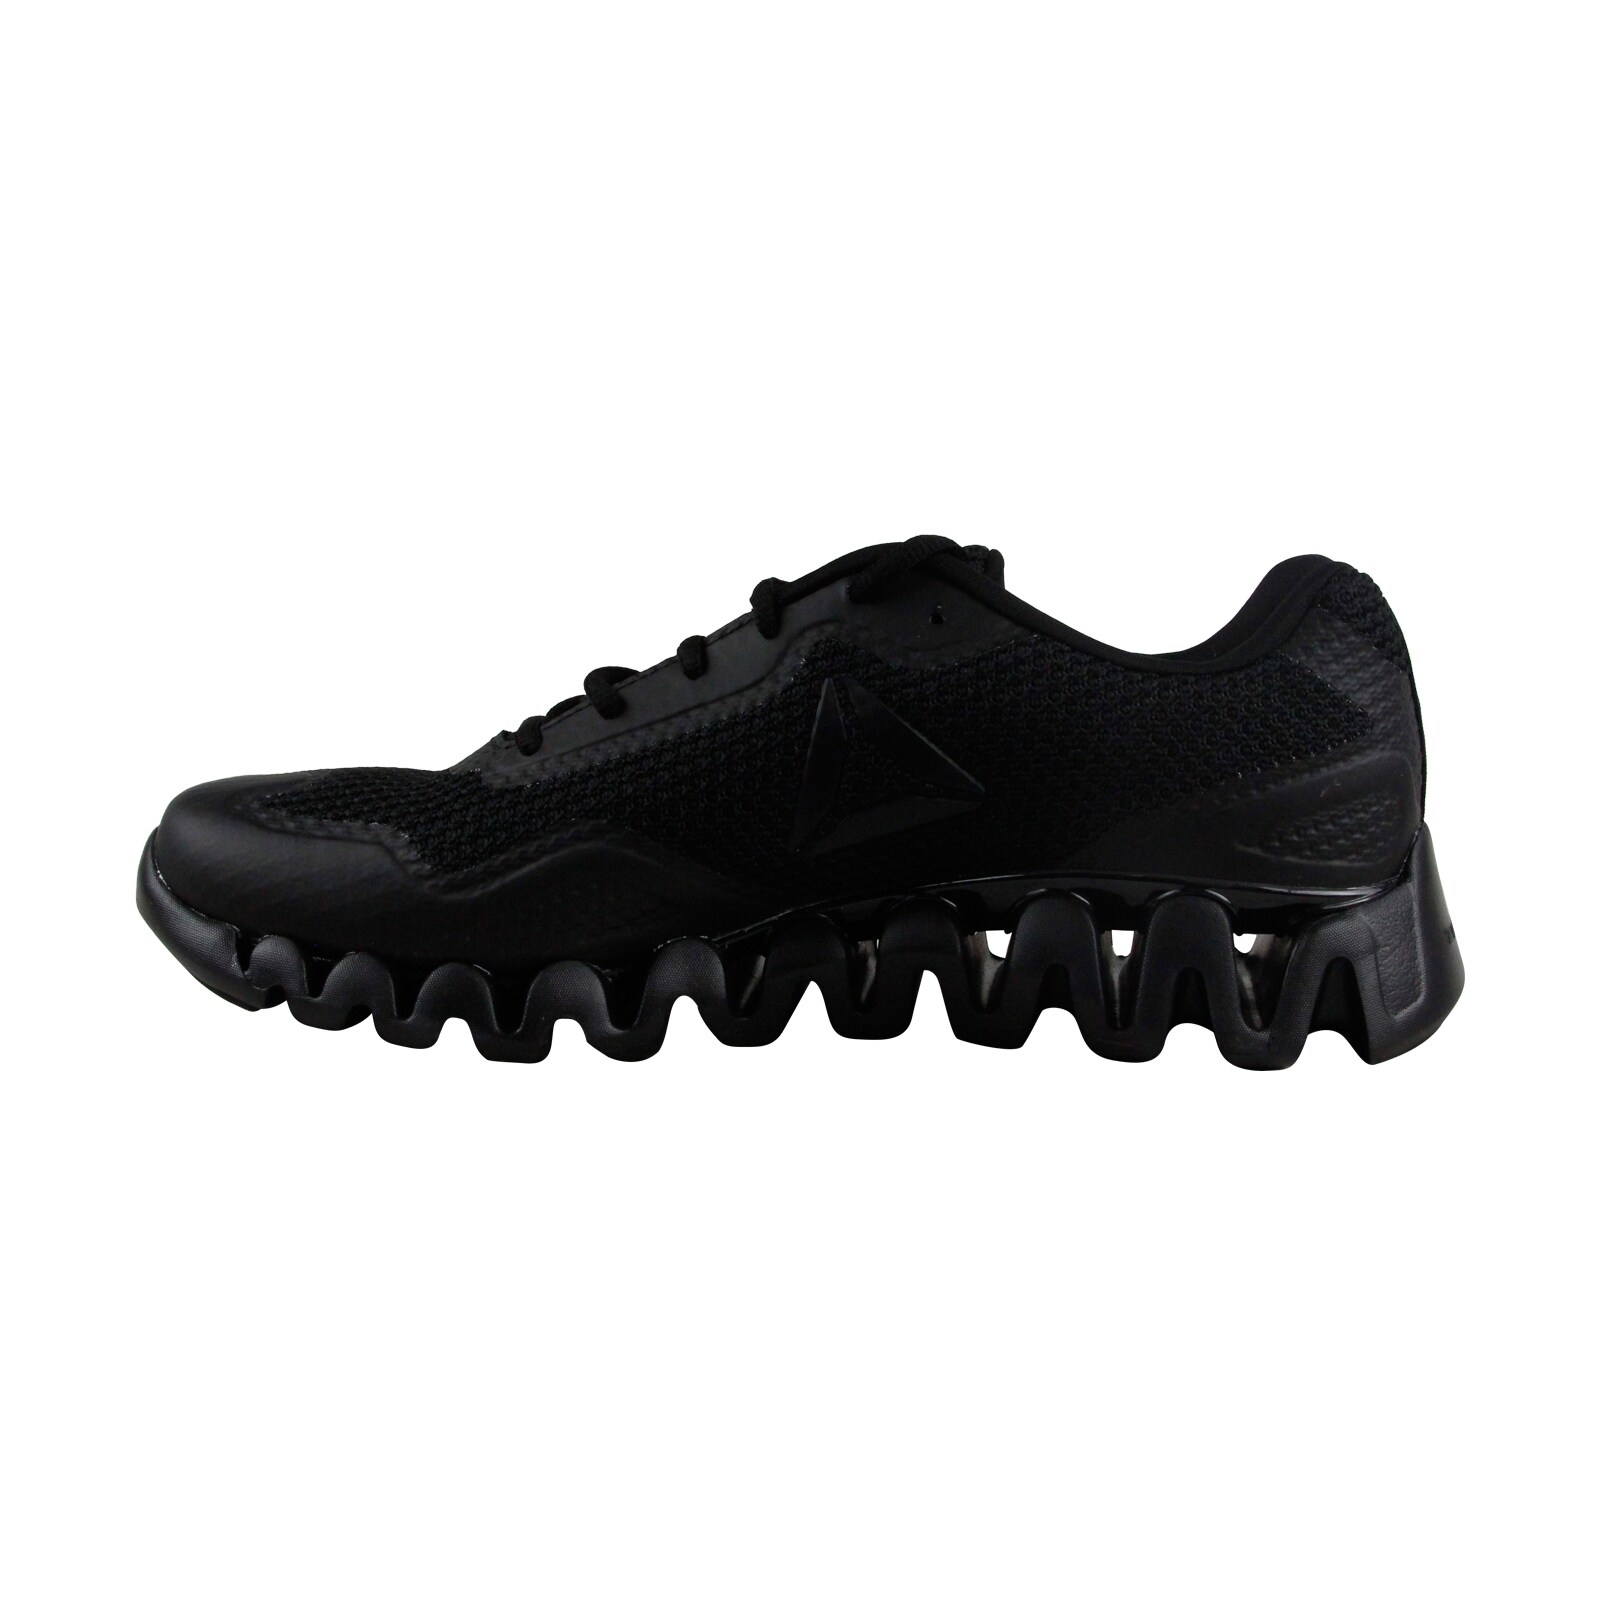 Shop Reebok Zig Pulse SE Mens Black Textile Athletic Lace Up Running Shoes  - Free Shipping Today - Overstock - 19662509 98964f183